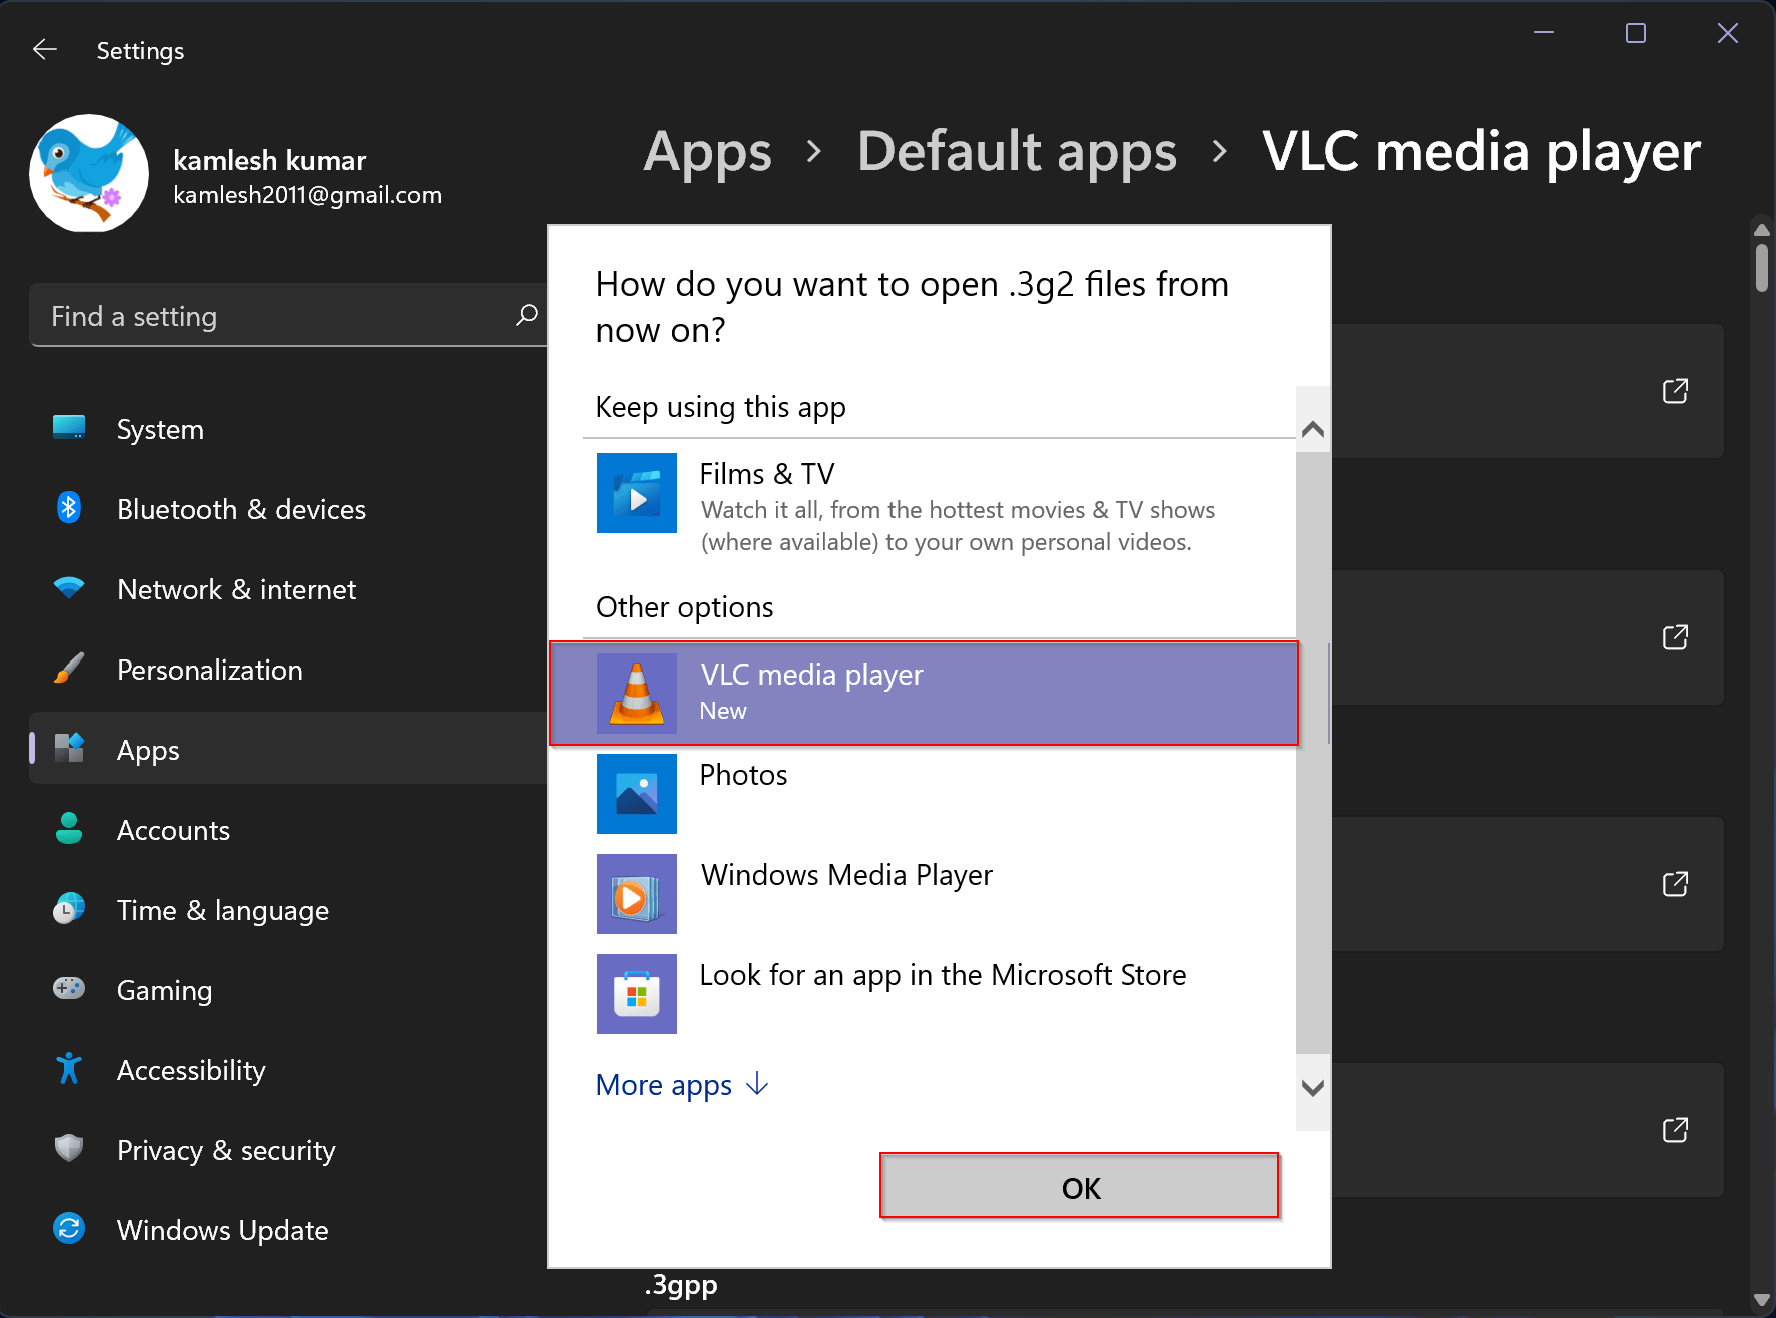 How to Make VLC the Default Media Player in Windows 11?